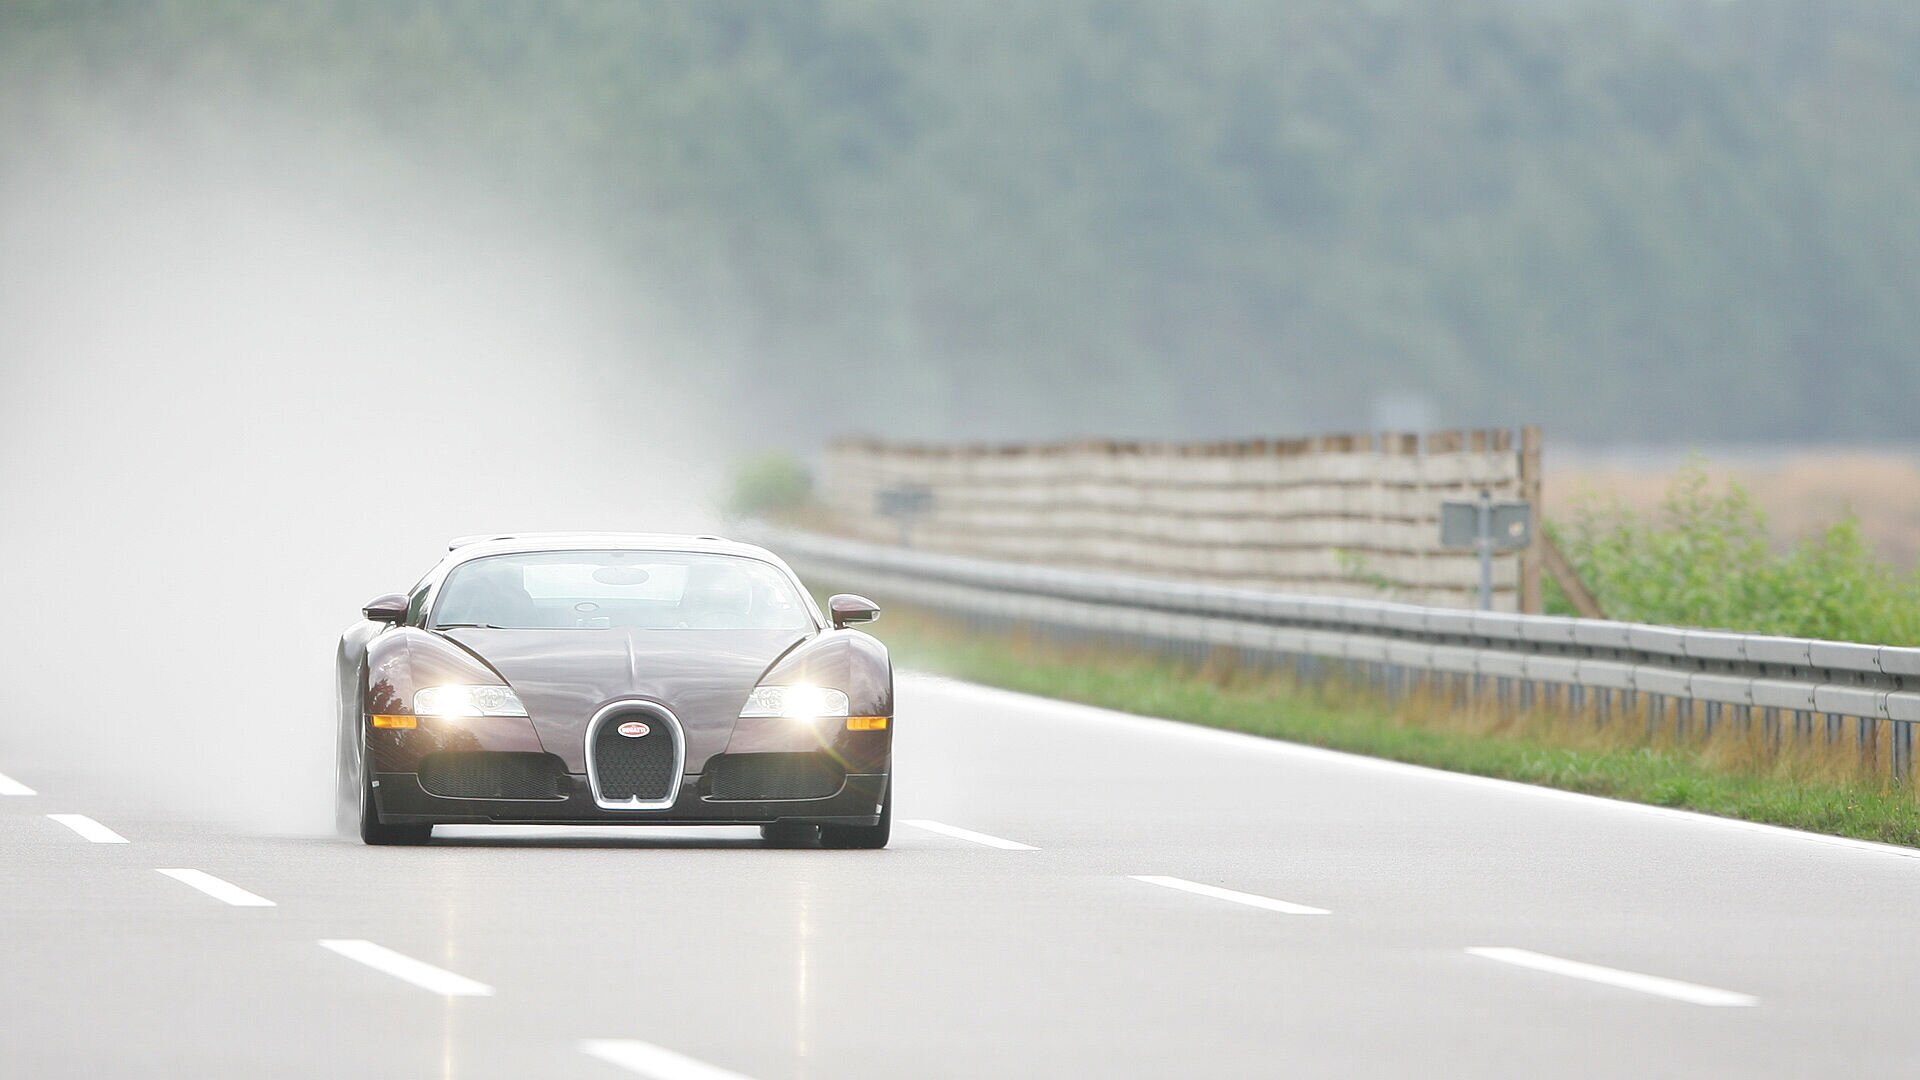 [Translate to Deutsch:] 15 years ago, the Bugatti Veyron 16.4 achieved the impossible and became the first series production car to break the 400 km/h barrier.